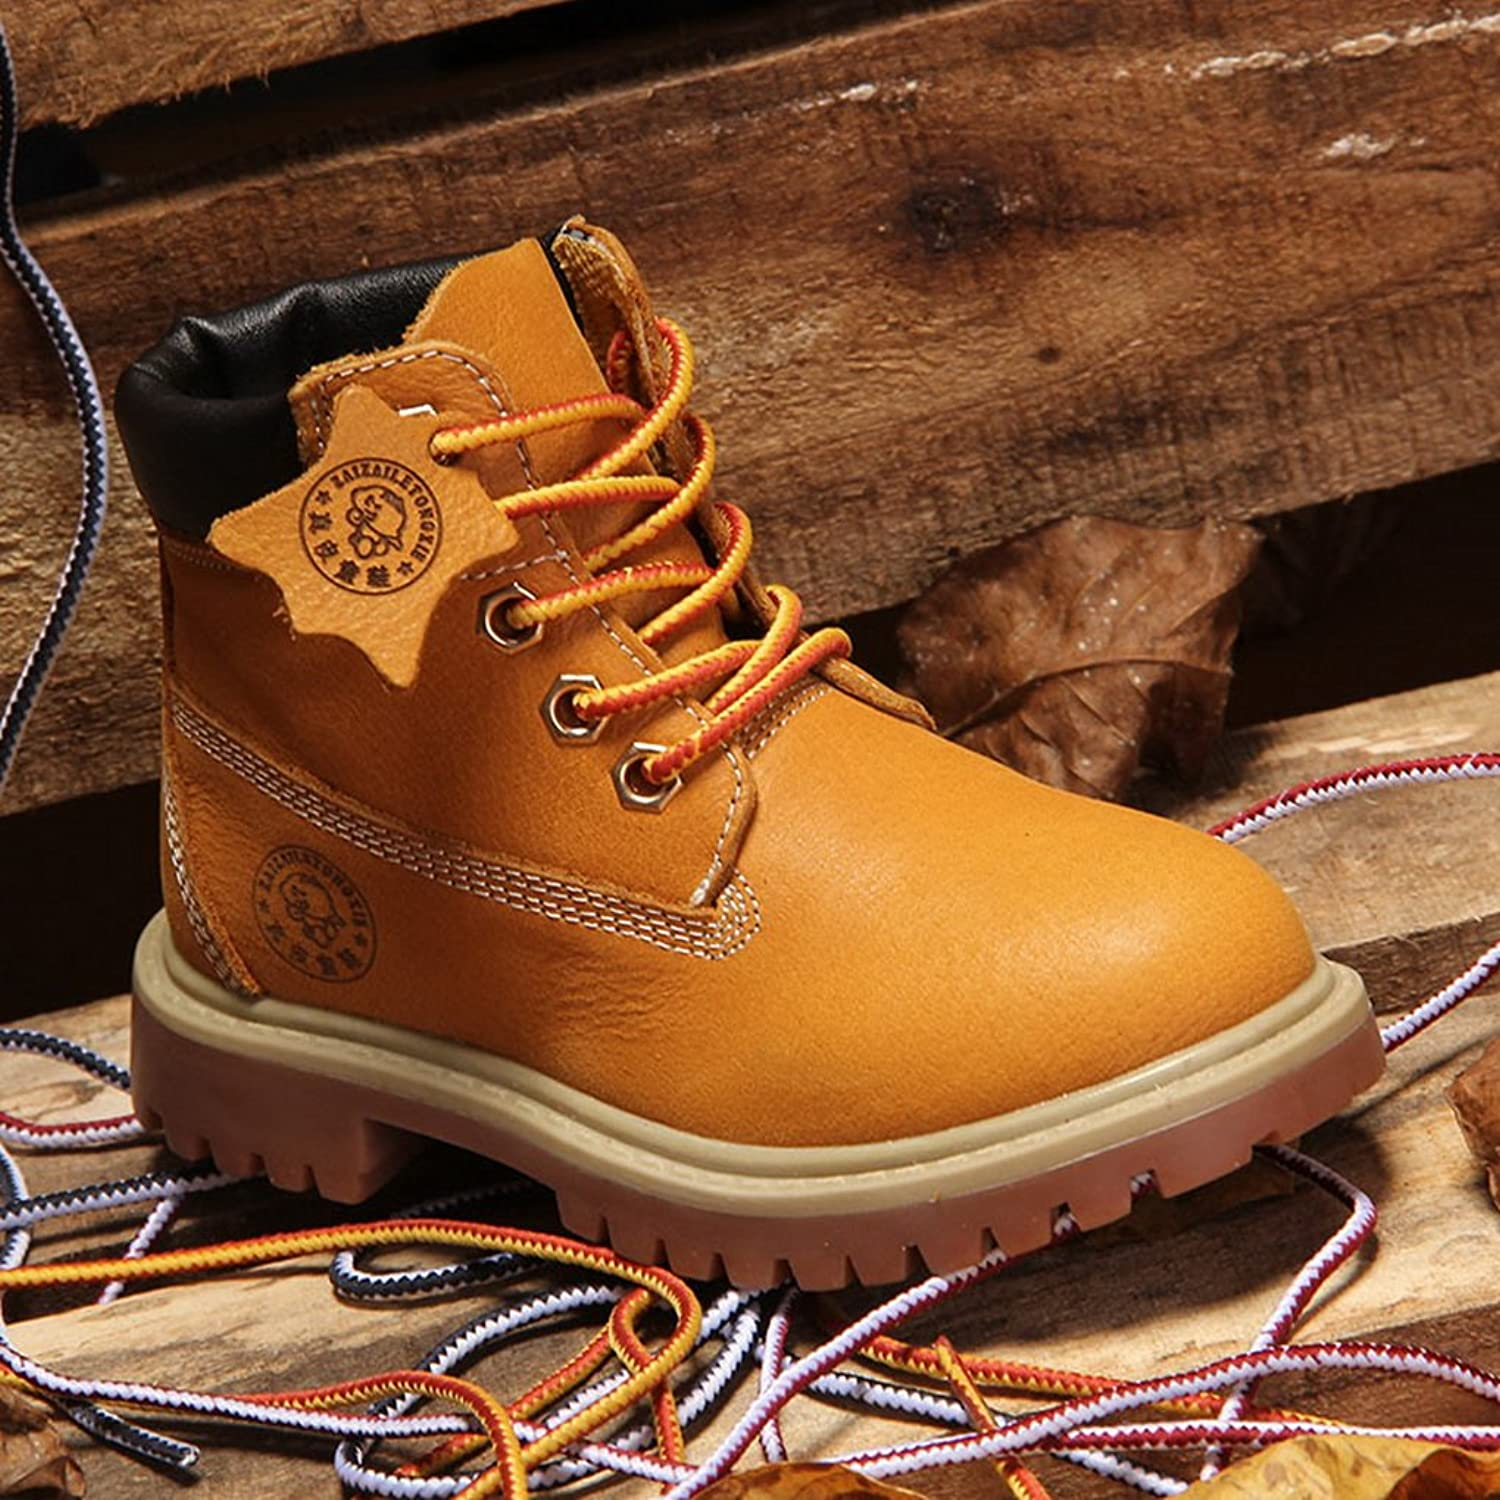 Lukis Winter Boys High Lace Ups Casual Flats Martin Boots Leather Shoes  Yellow 10 Child UK: Amazon.co.uk: Shoes & Bags